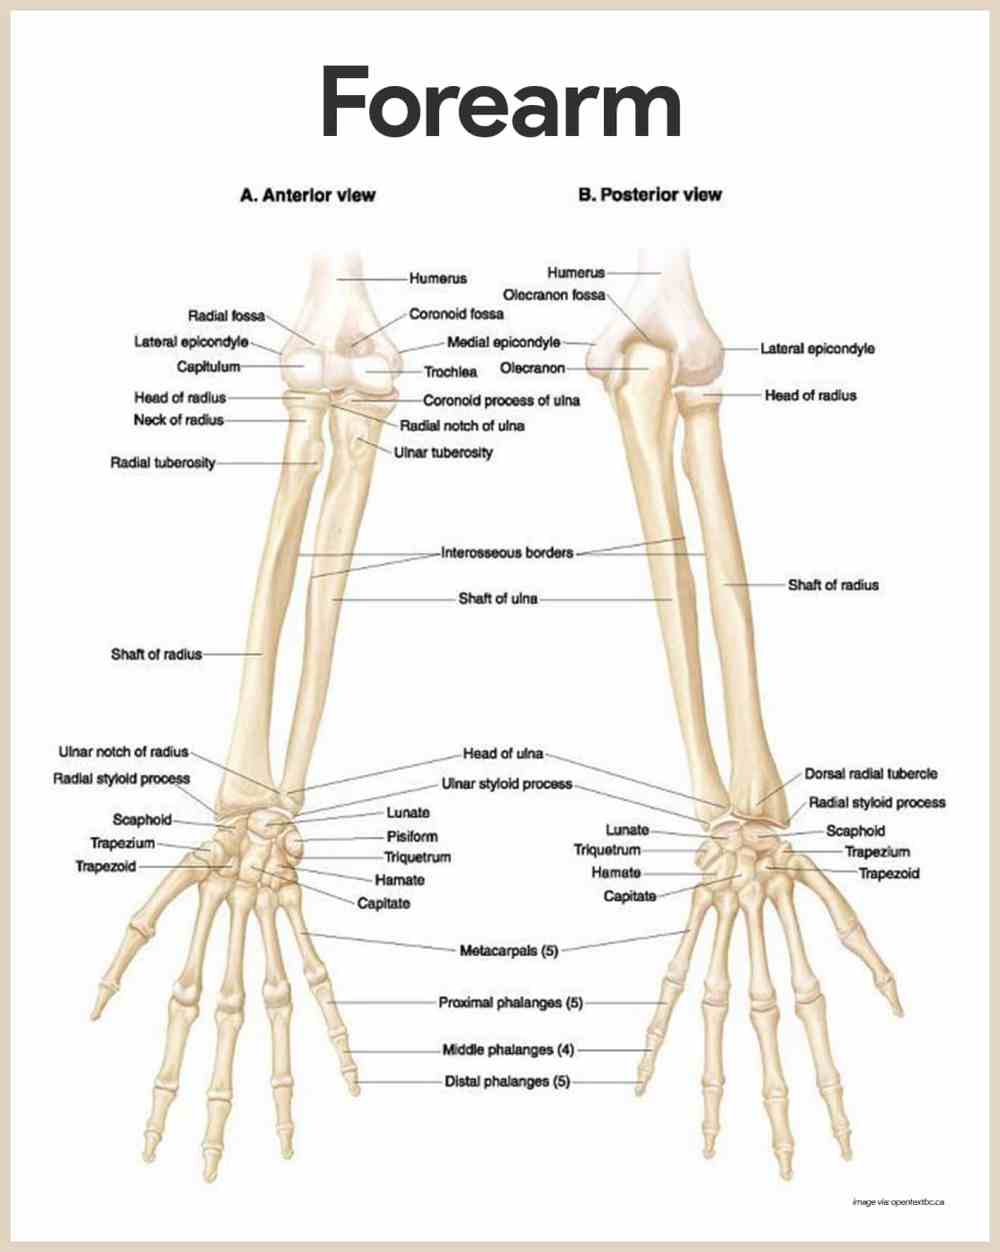 medium resolution of forearm anatomy skeletal system anatomy and physiology for nurses